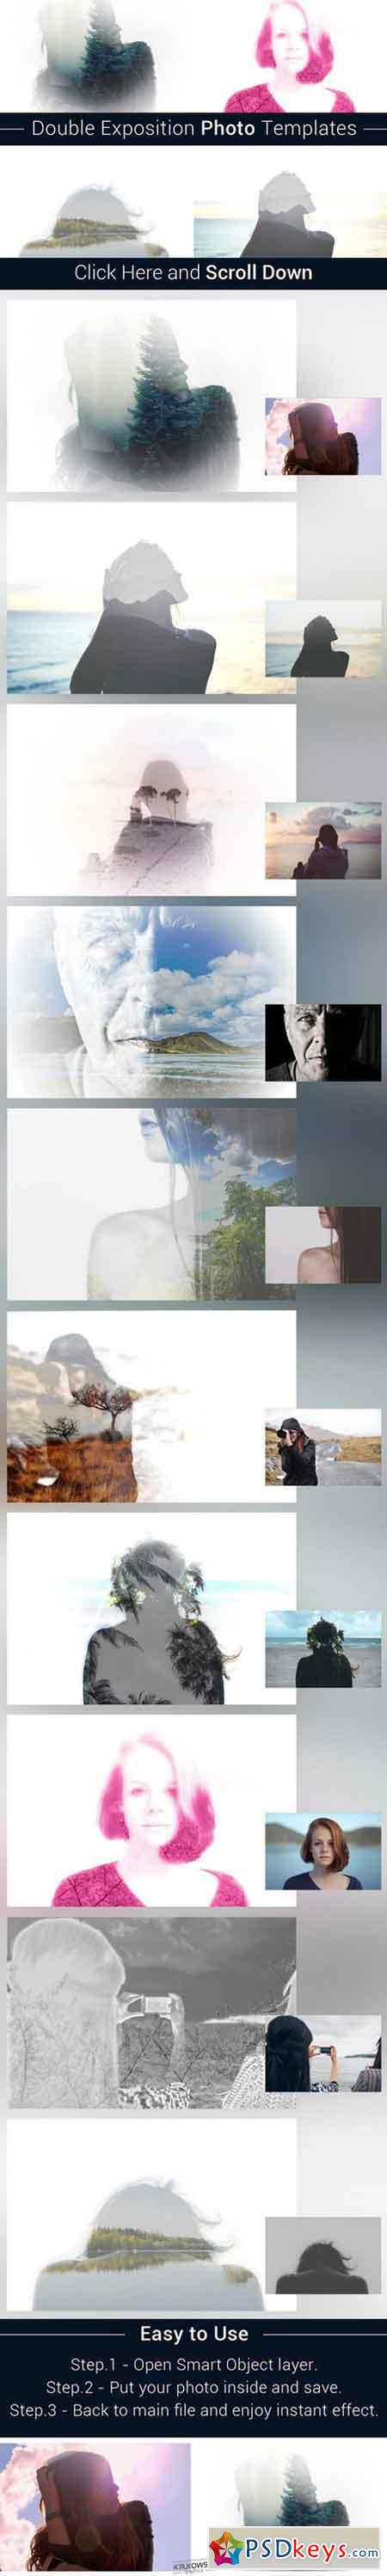 Double Exposition Photo Templates 900047